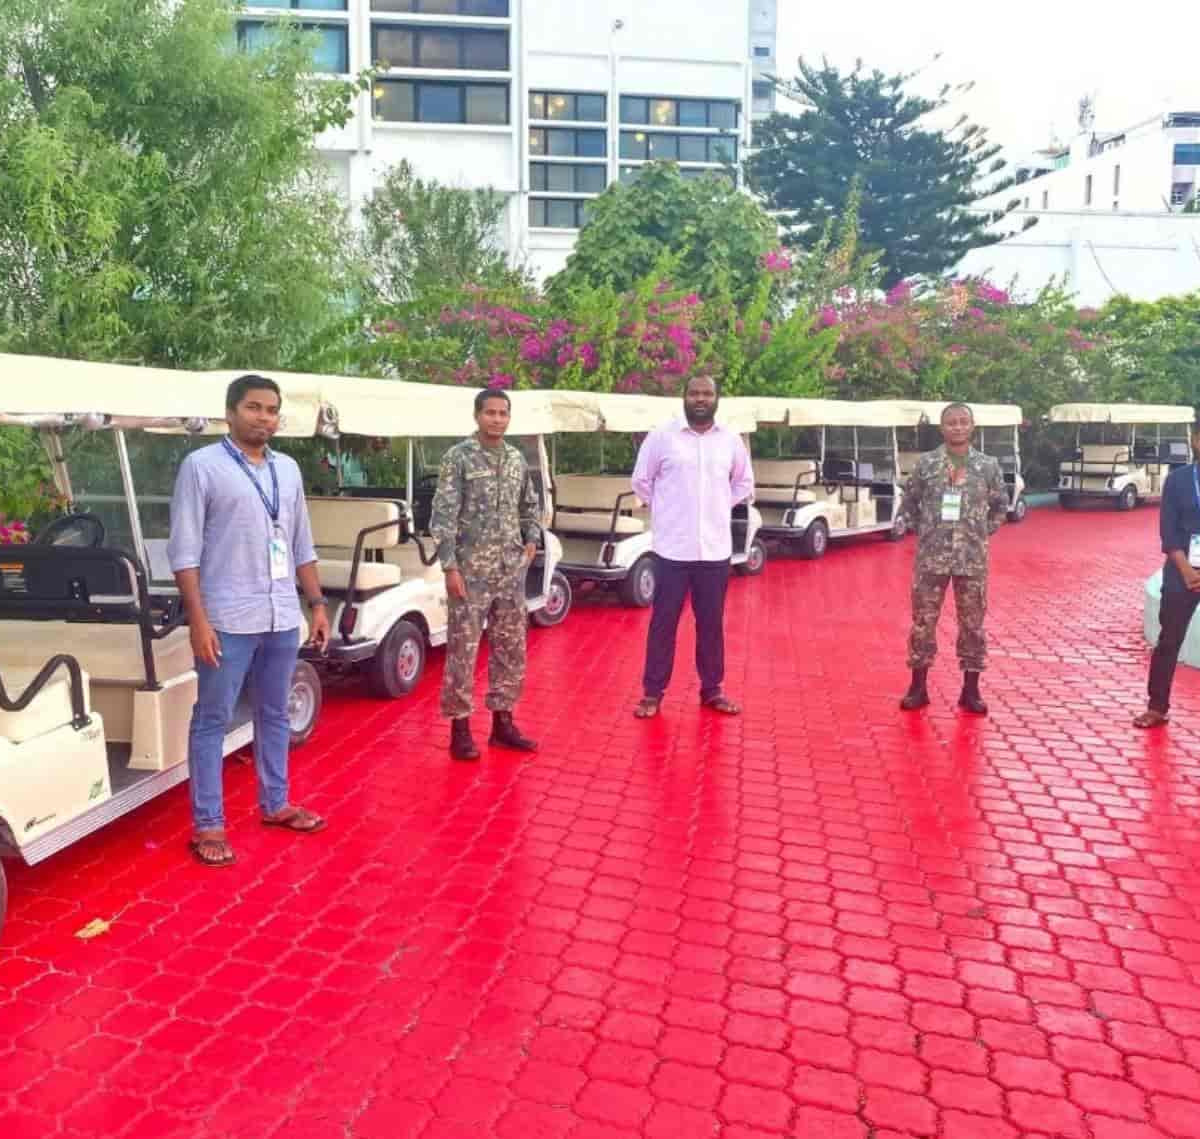 NEOC and CROSSROADS maldives with miniter of toursim ali waheed posing ofr a picture infront of the 06 buggies